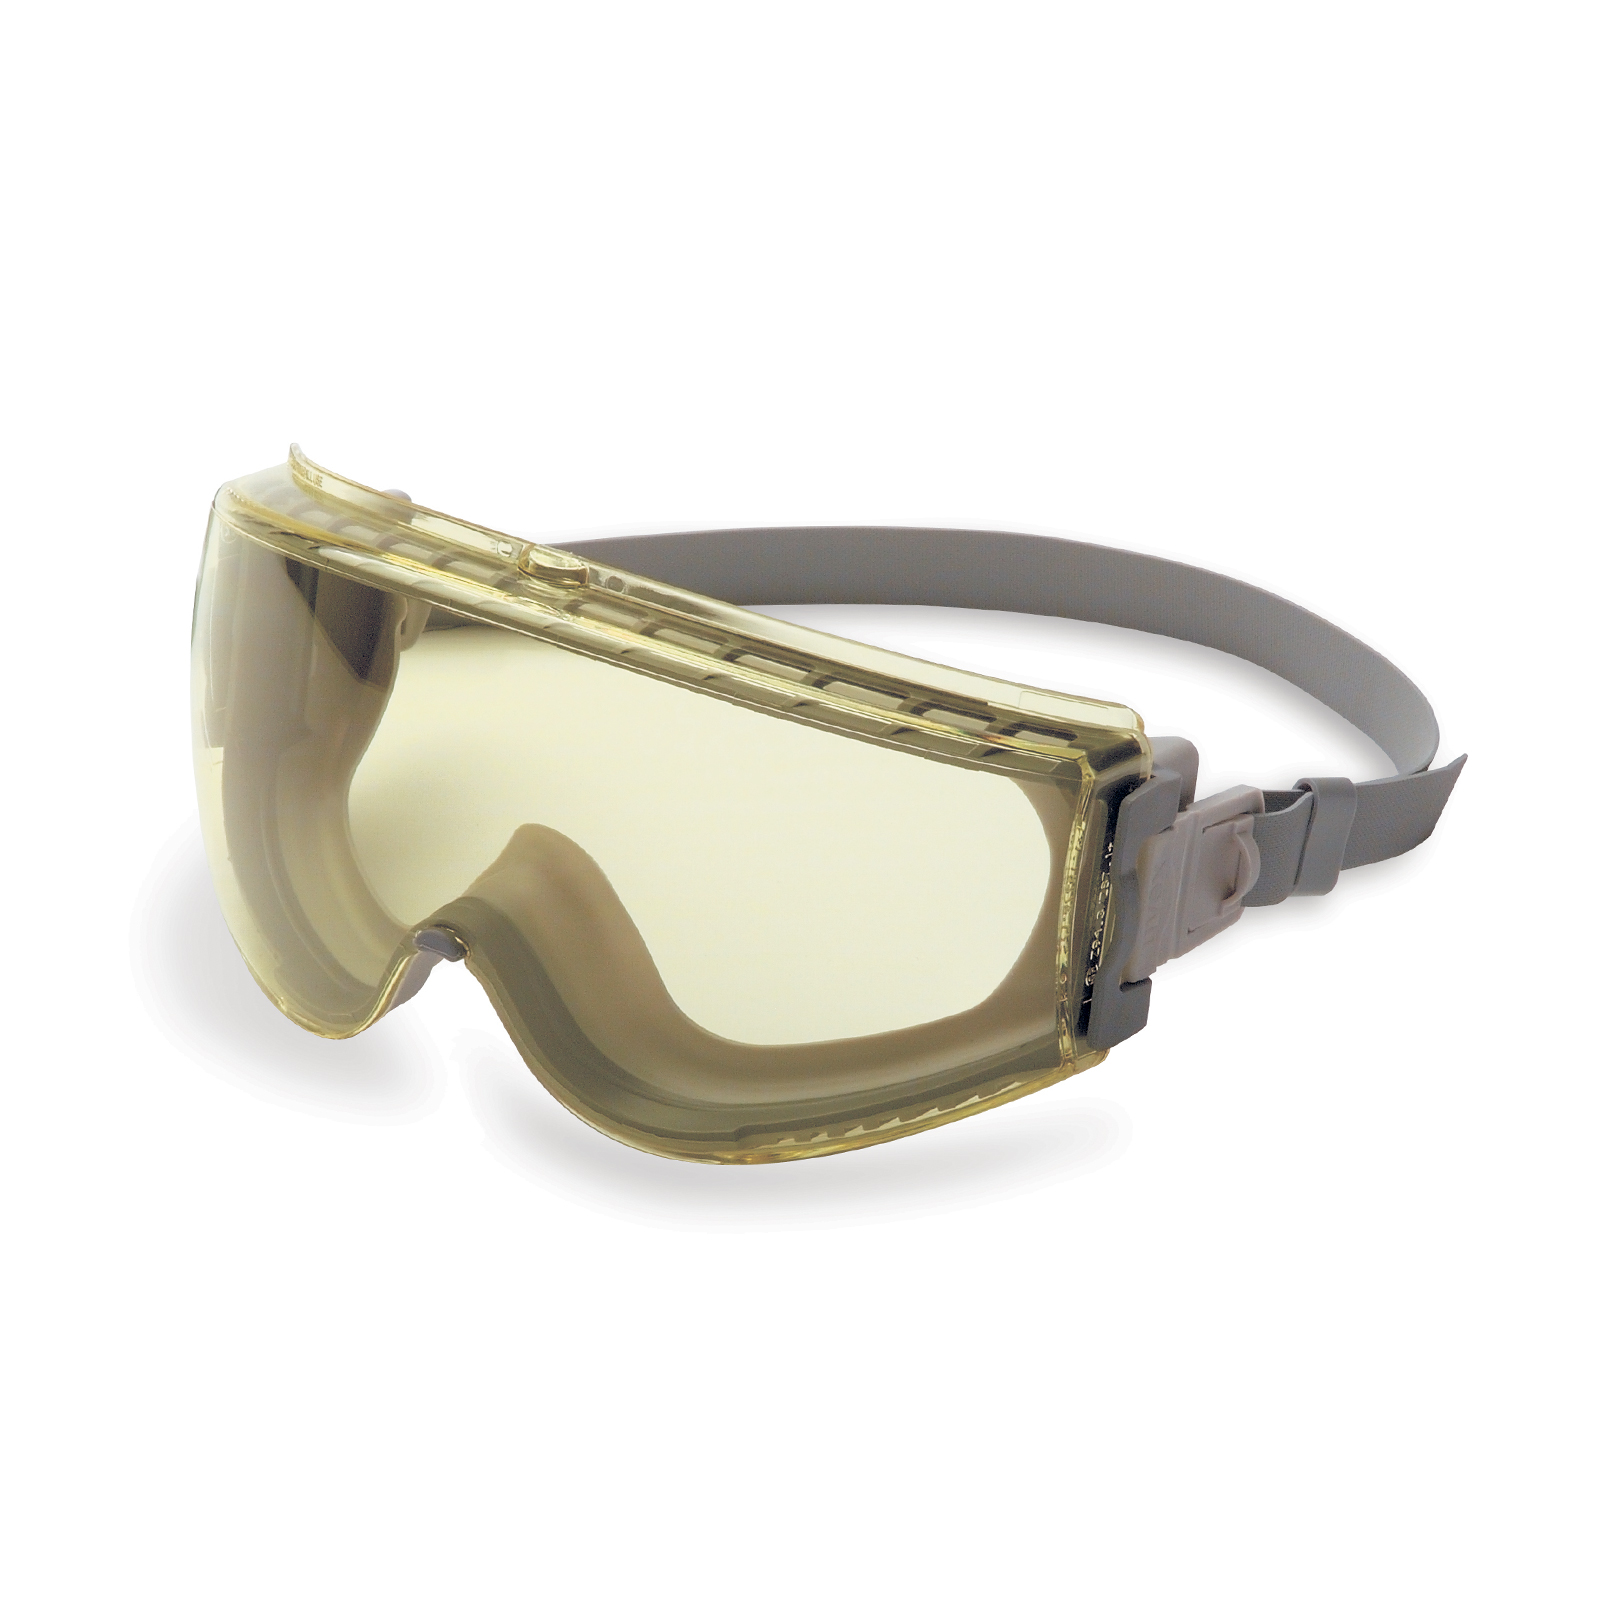 uvex_stealth_s3962-45-Securovision